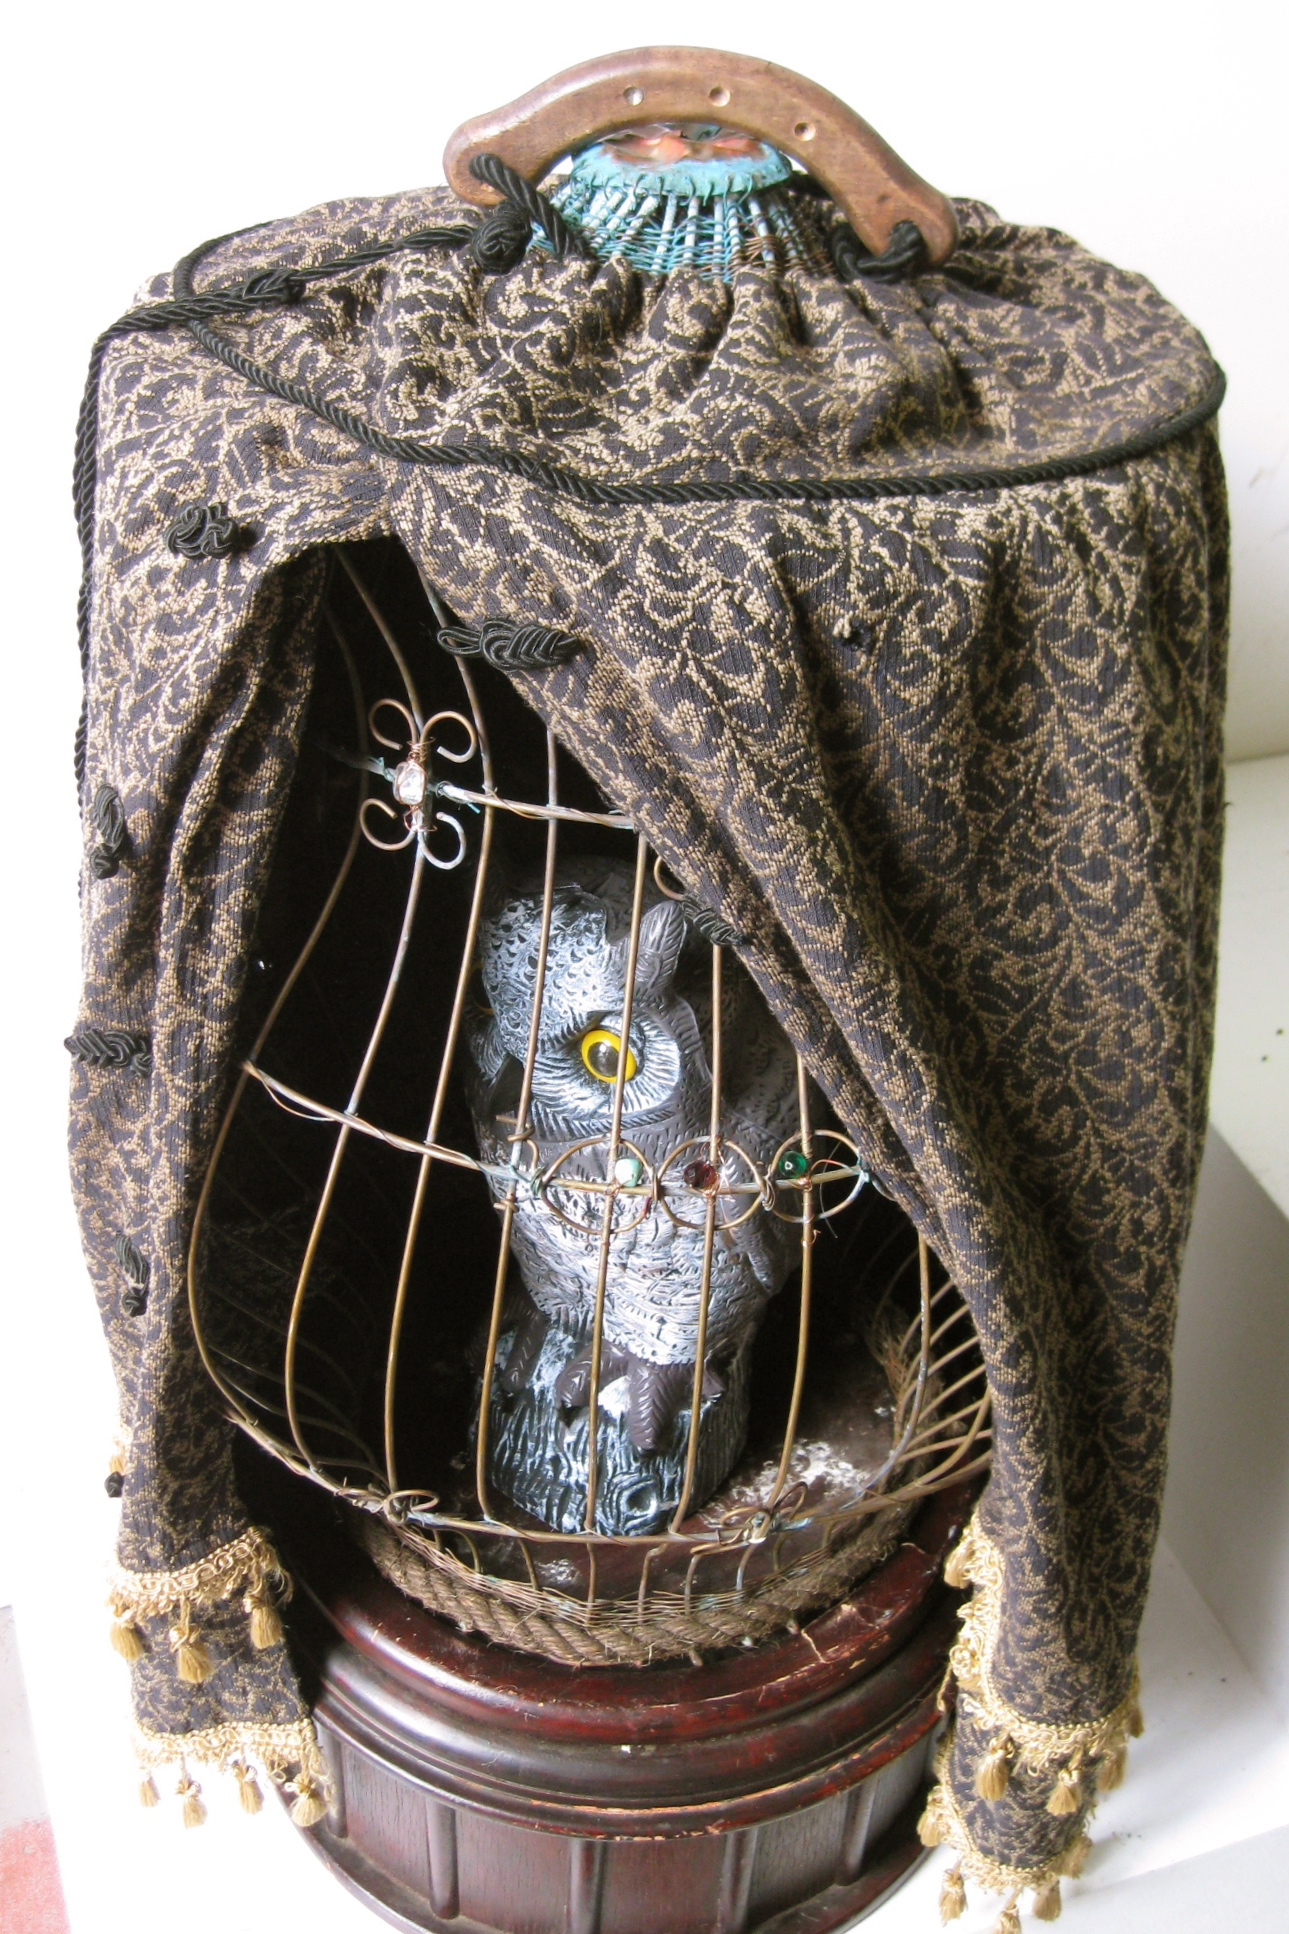 BIR0115 BIRDCAGE COVER, For Ornate Large Cage $37.50